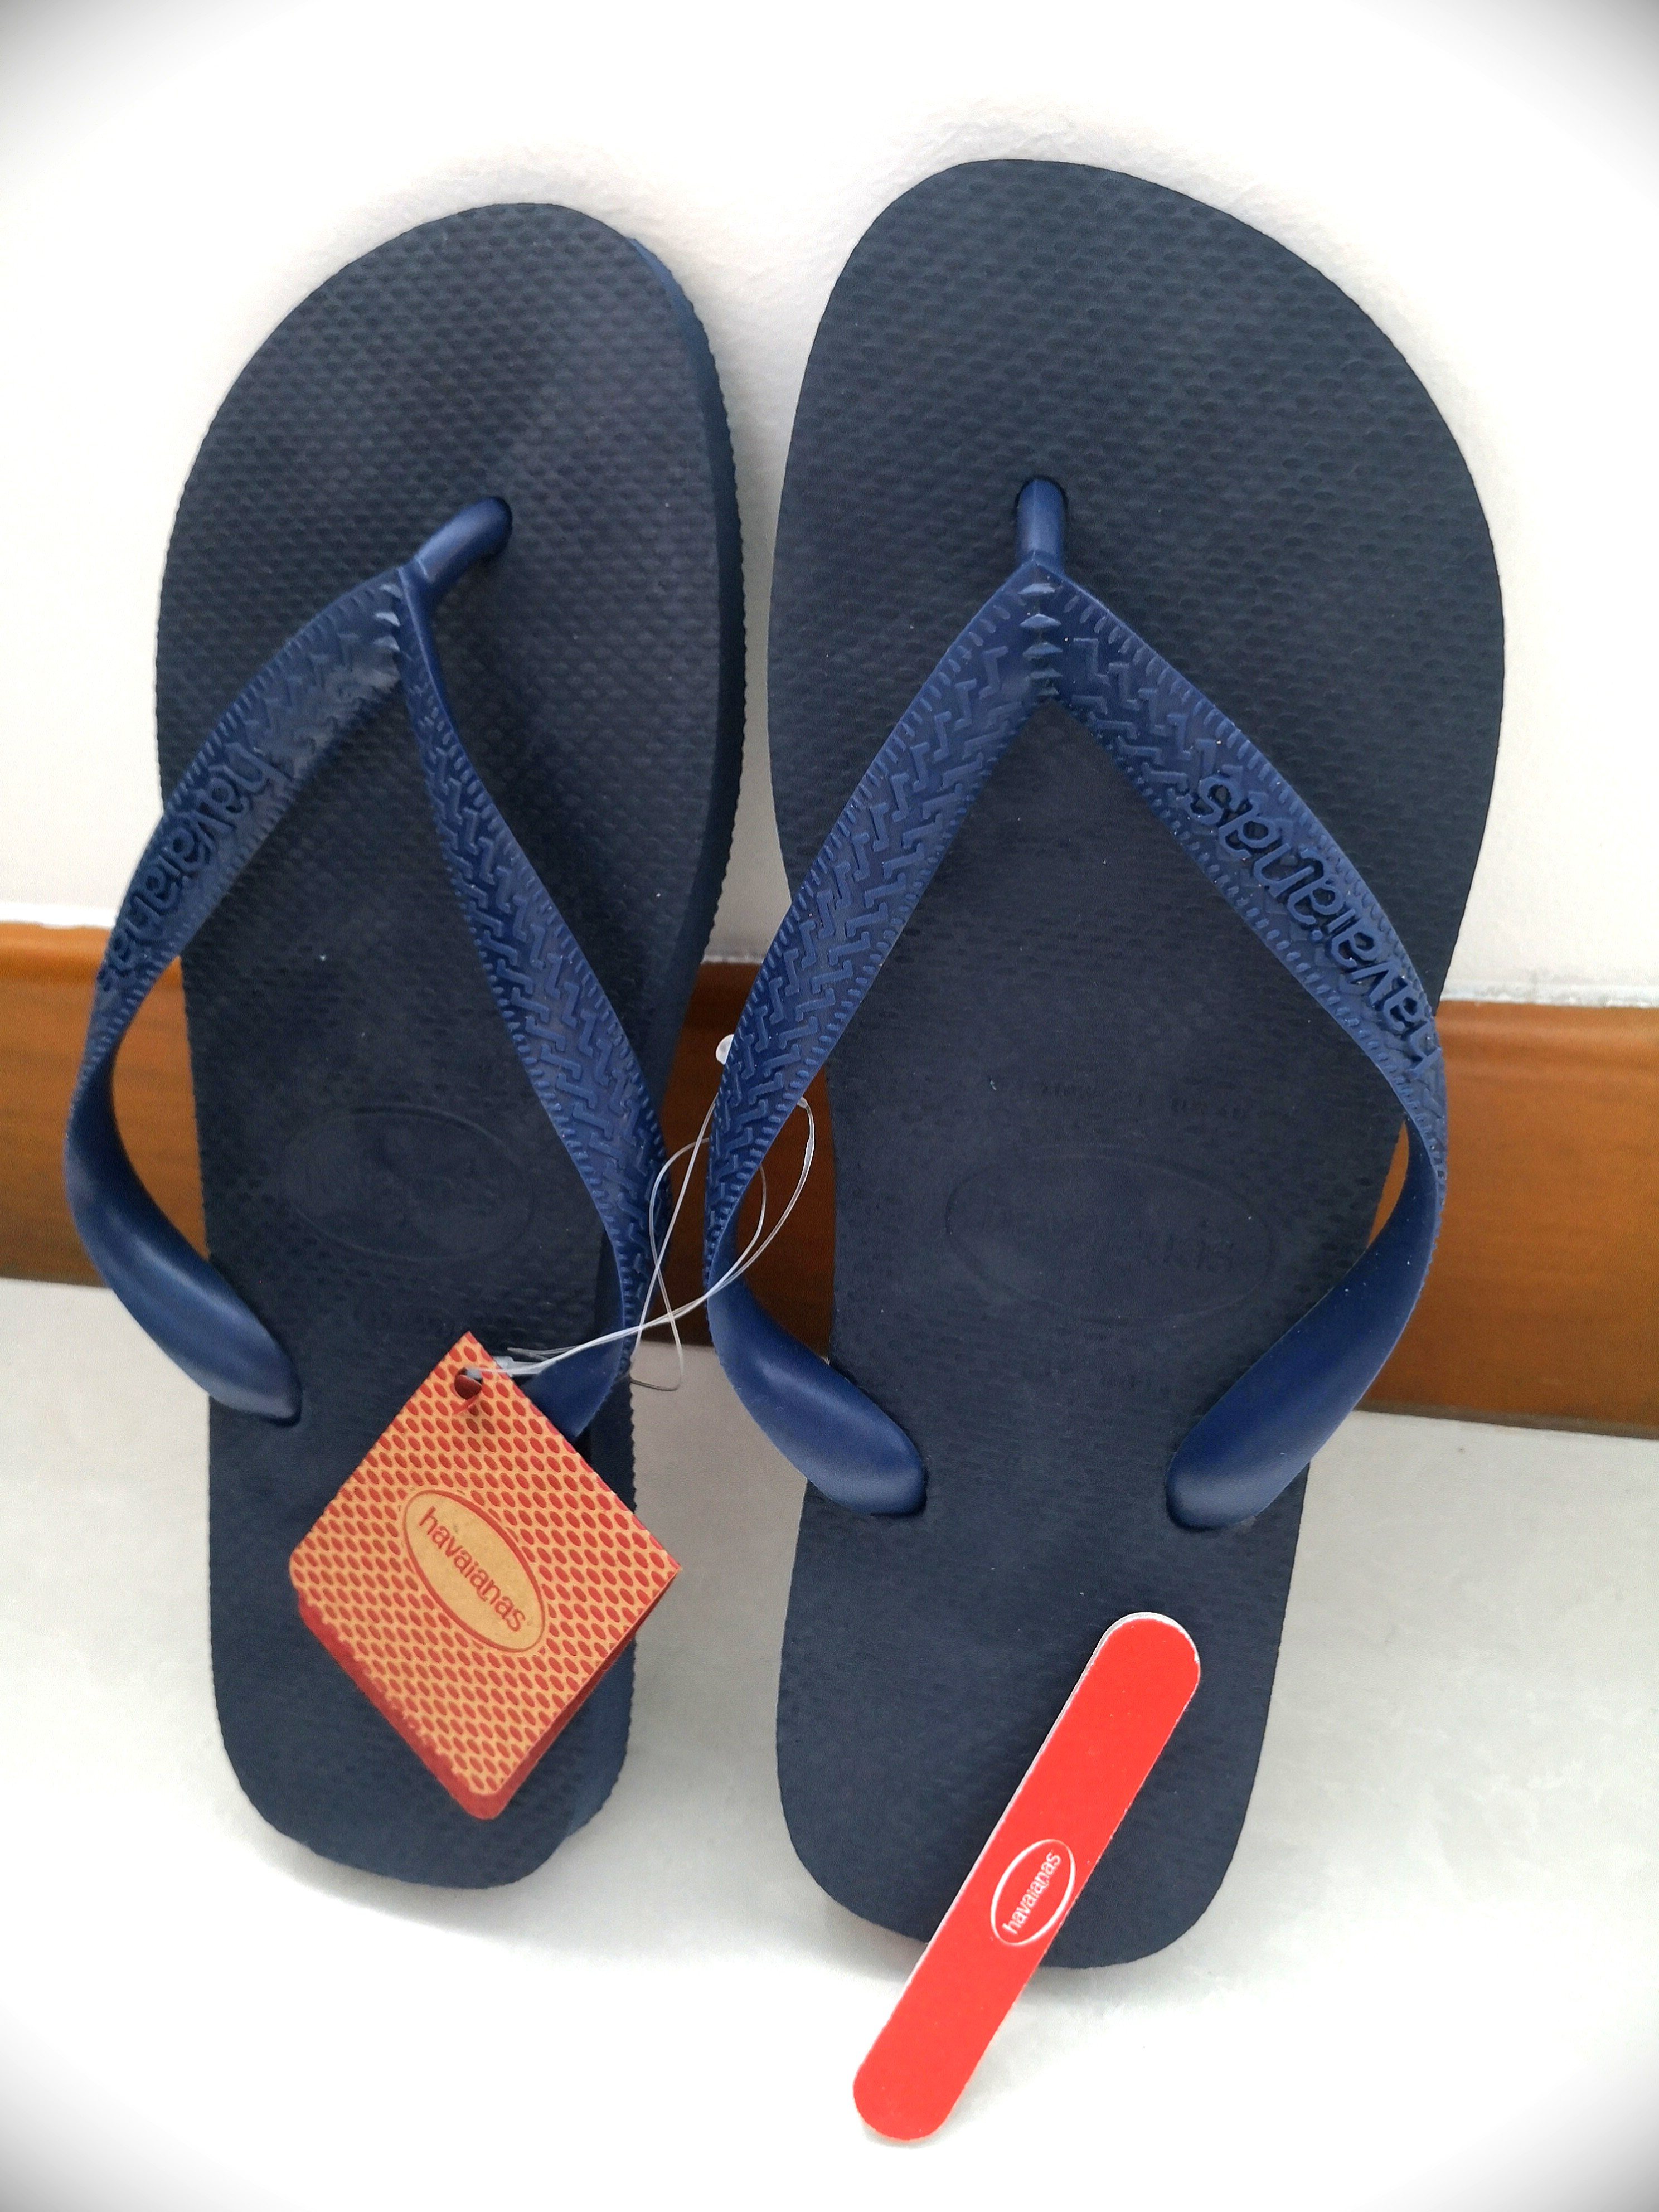 5a5be8fab5bb Havaianas Classic Top Navy Blue Flip Flops